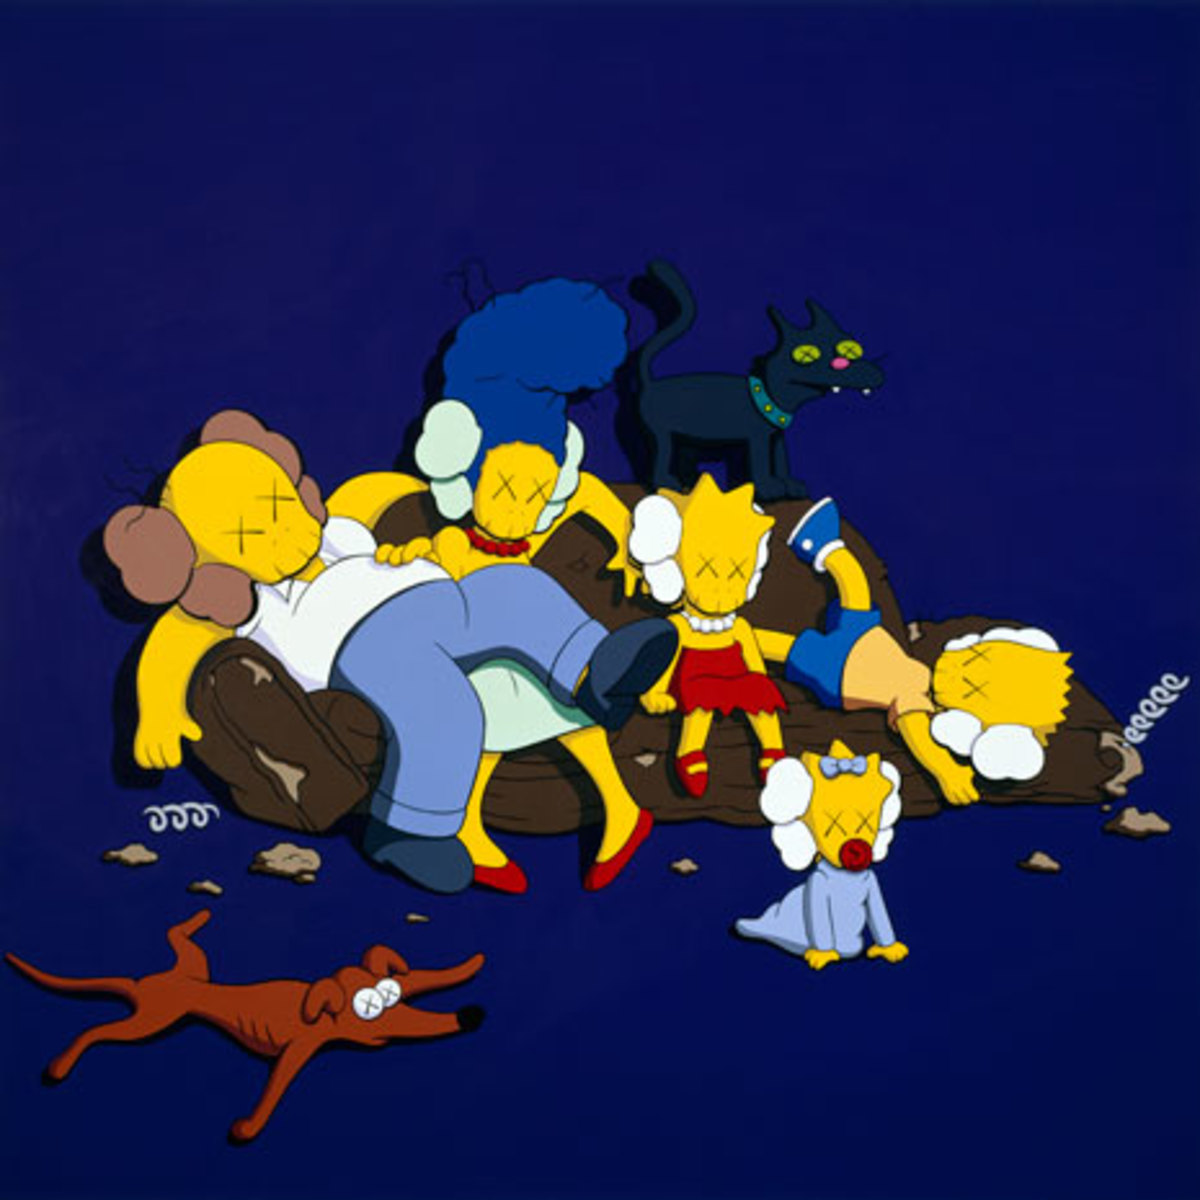 KAWS - The Long Way Home - 2